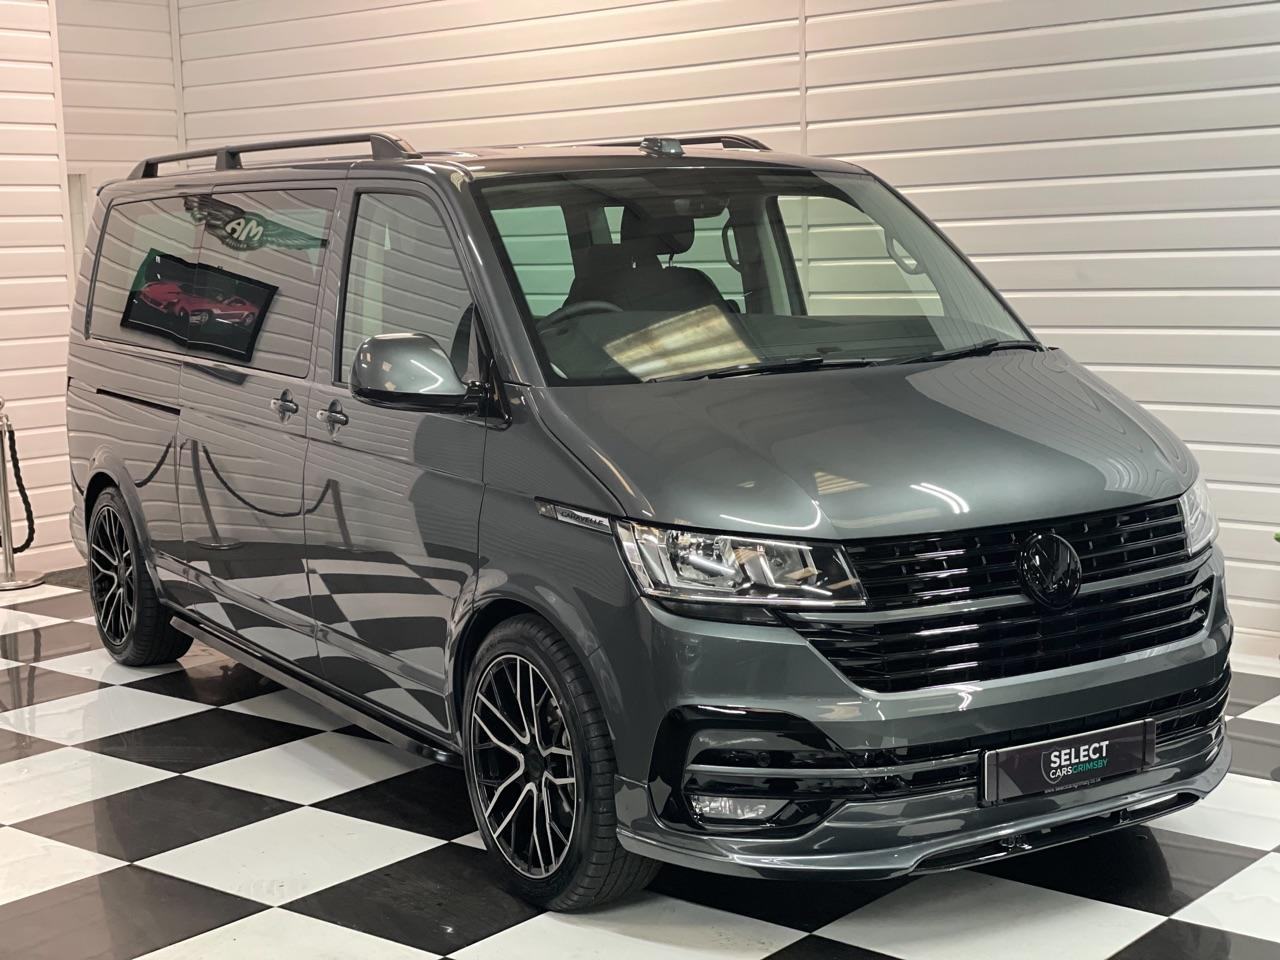 Volkswagen Caravelle 2.0 150ps LWB DSG MPV Diesel Indium Grey